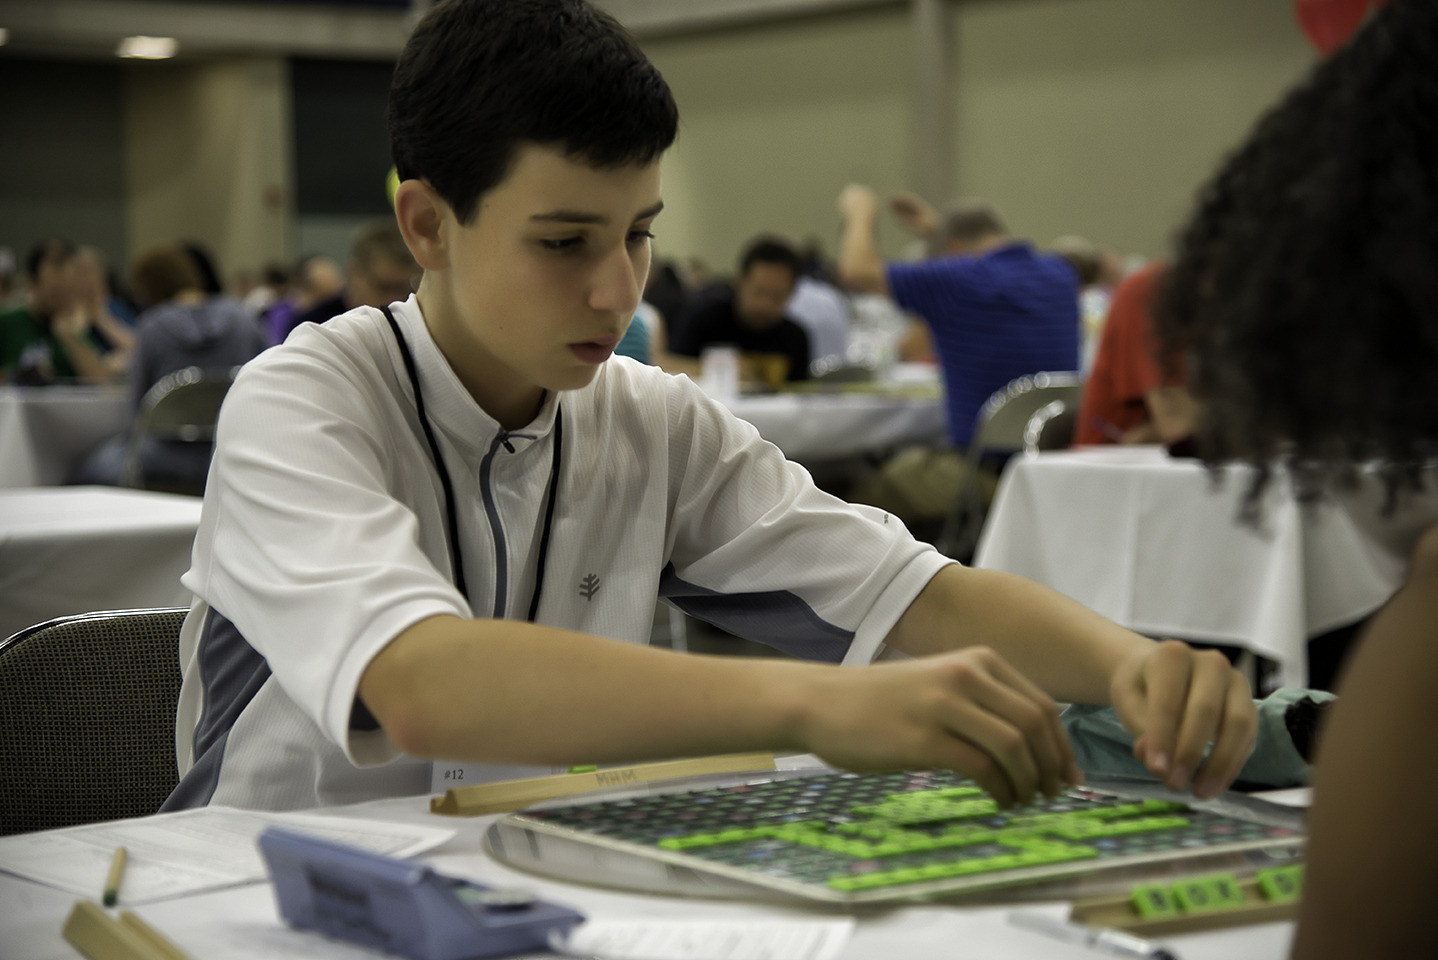 Mack Meller from Bedford, NY plays a word during the 2014 National SCRABBLE Championship at the Buffalo Niagara Convention Center, Wednesday August 13. At 14, Meller was the youngest competitor in the tournament's Division 1 and finished in 7th place. (Photo: Business Wire)